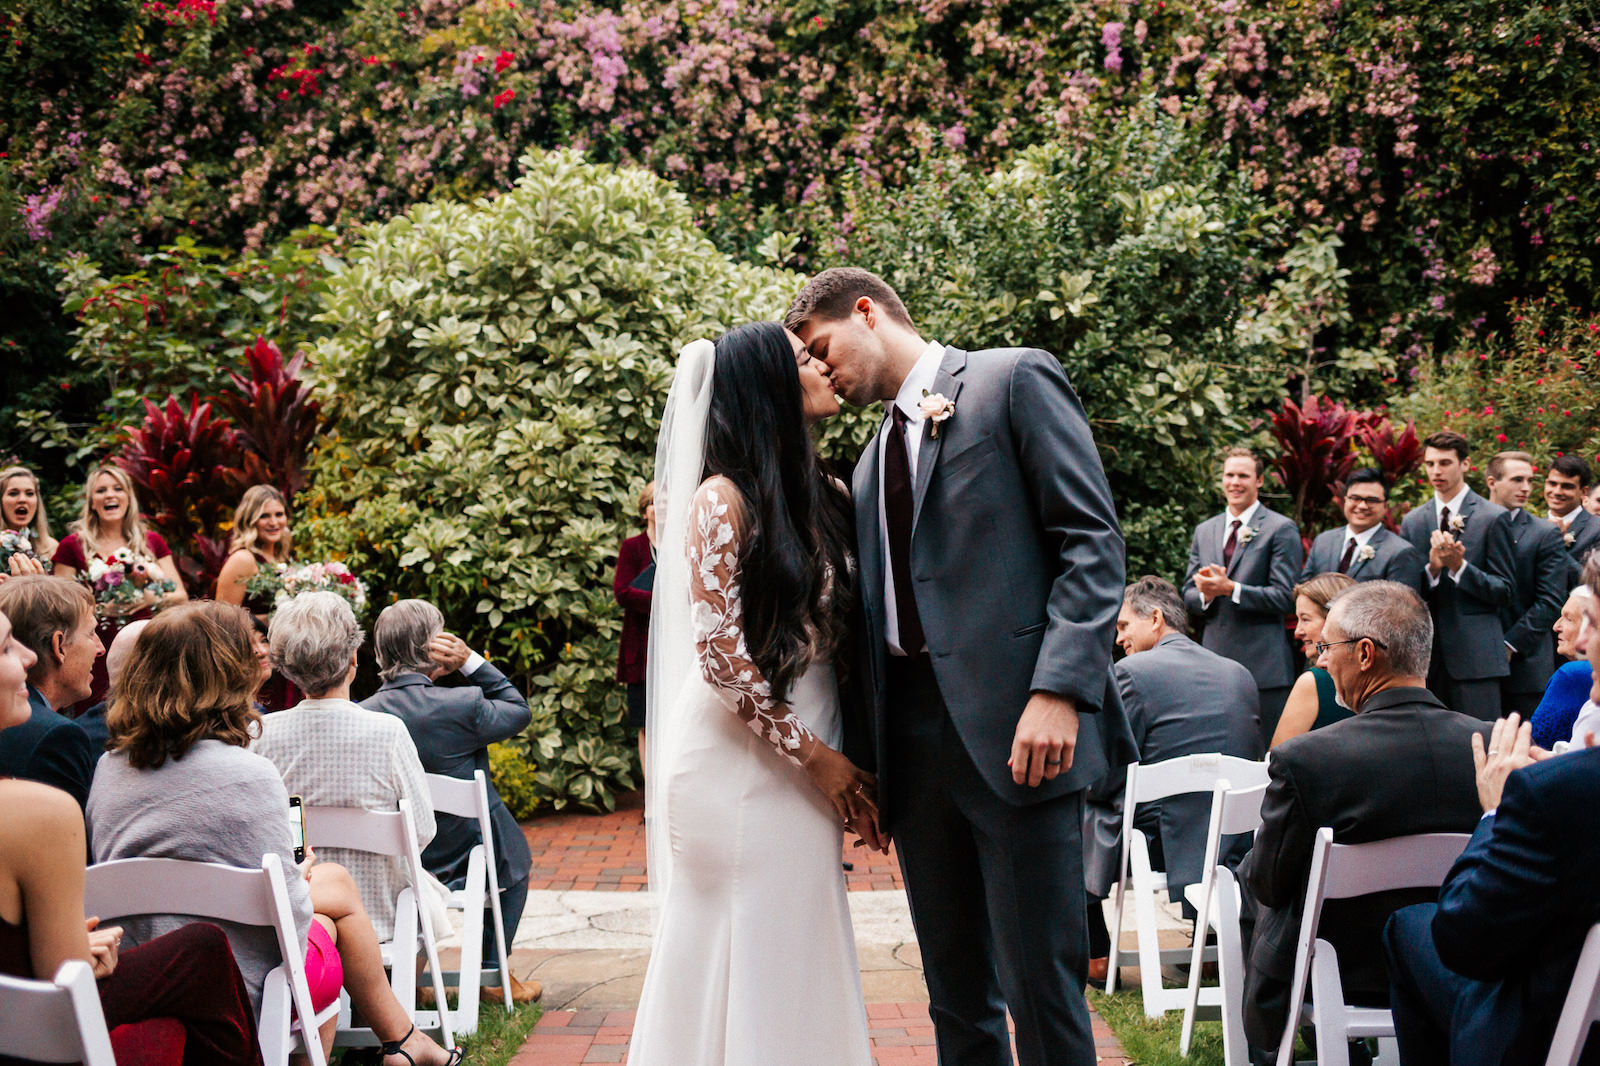 Tampa Bay Bride and Groom Kiss At The End of The Aisle At Sunken Gardens Wedding Ceremony, Bride Wearing Long White BHLDN Wedding Dress with Illusion Lace Sleeves | Florida Wedding Planner John Campbell Weddings